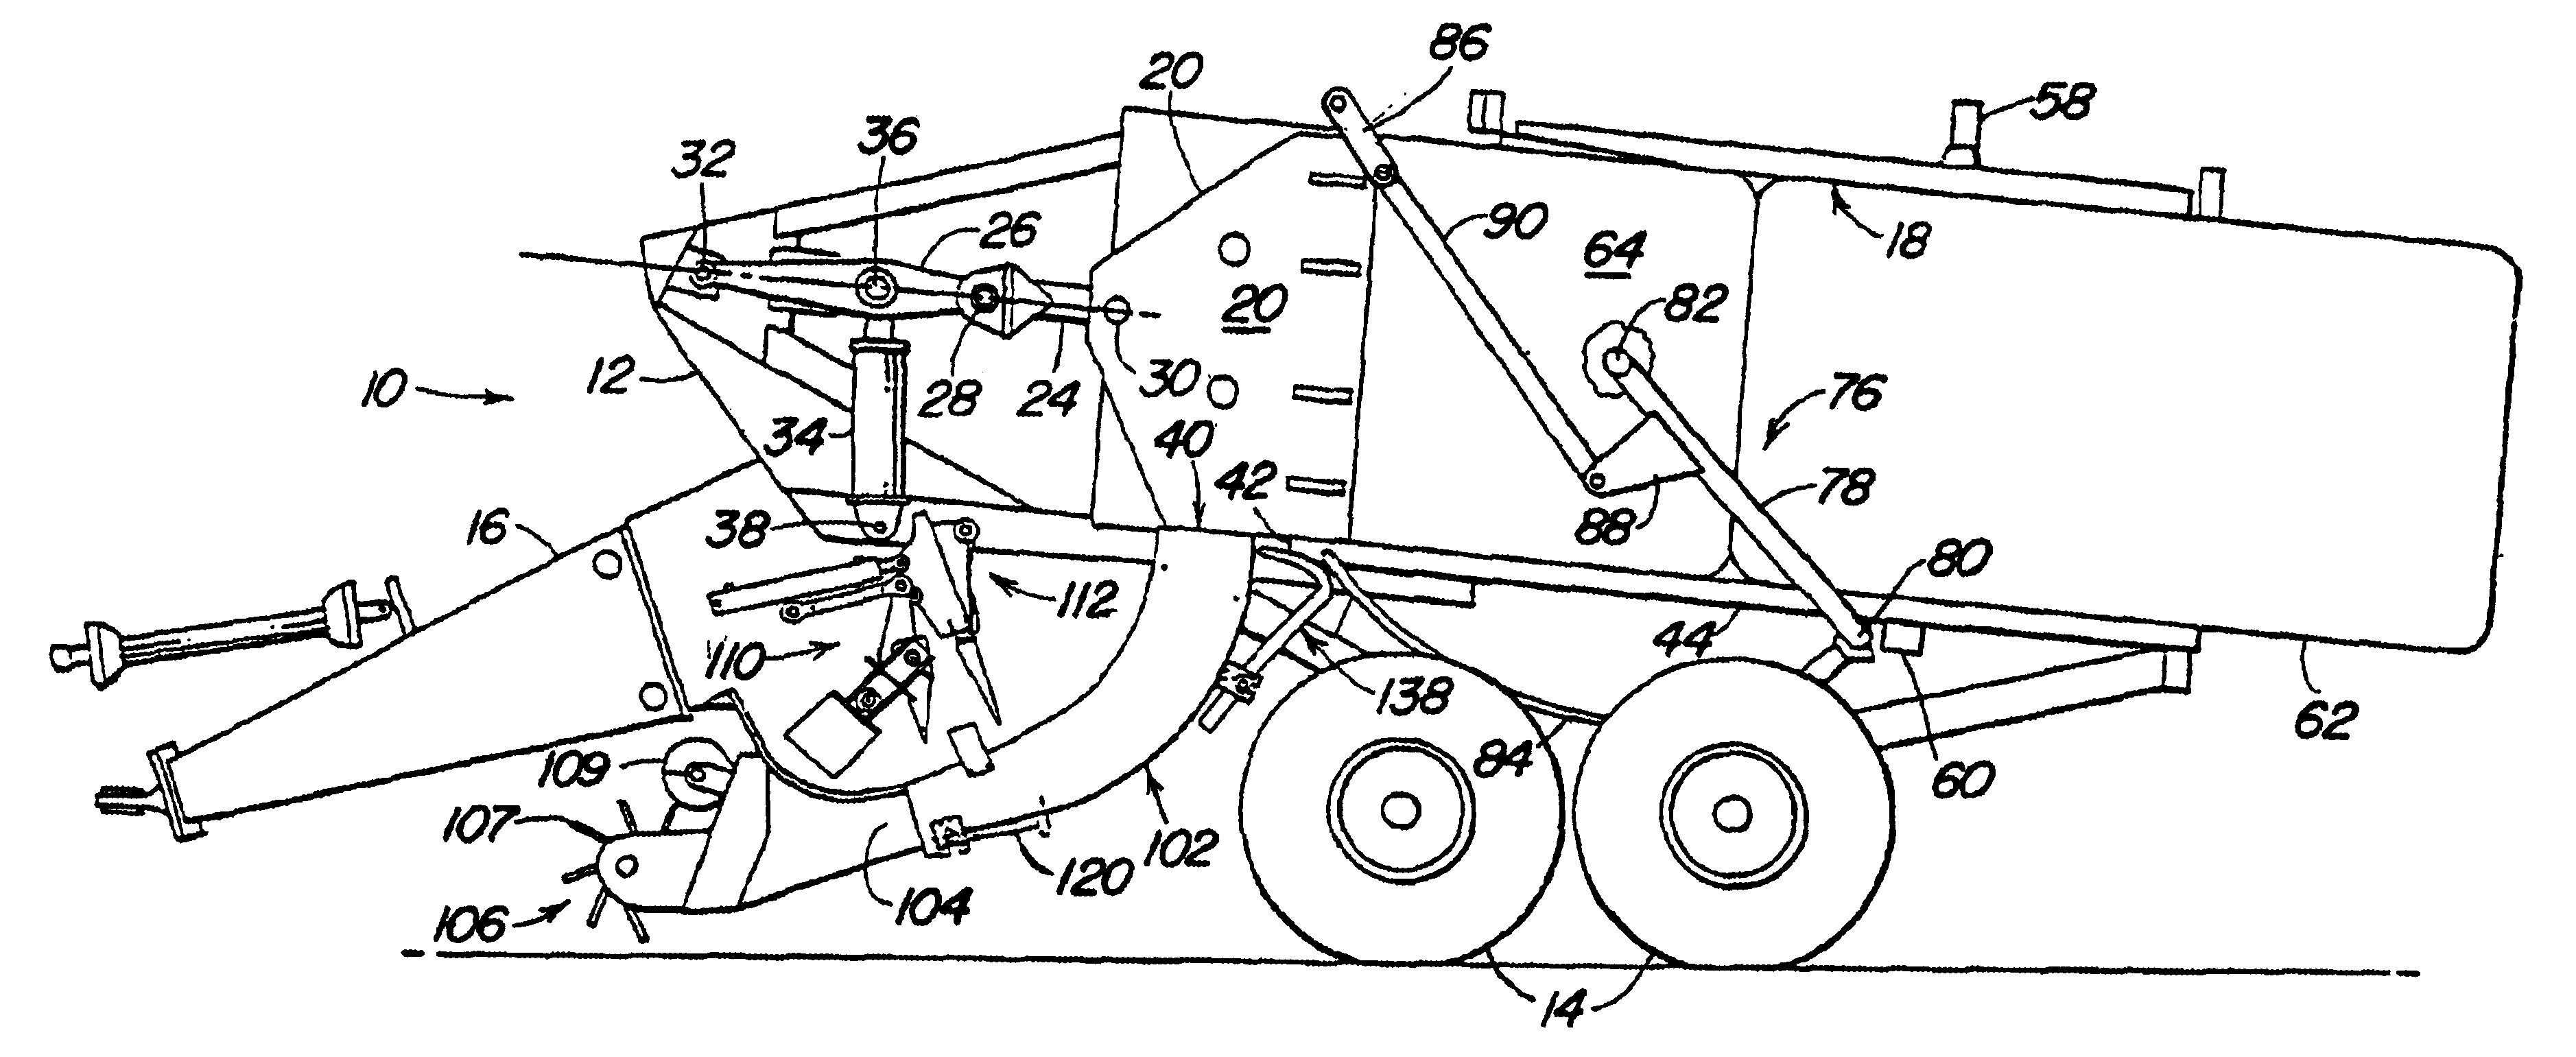 157311 besides 462978r1 Rake Tooth further 1053394m1 Baler Tooth likewise Aftermarket Plow Parts in addition Kubota Front Axle Diagram. on hay baler diagram